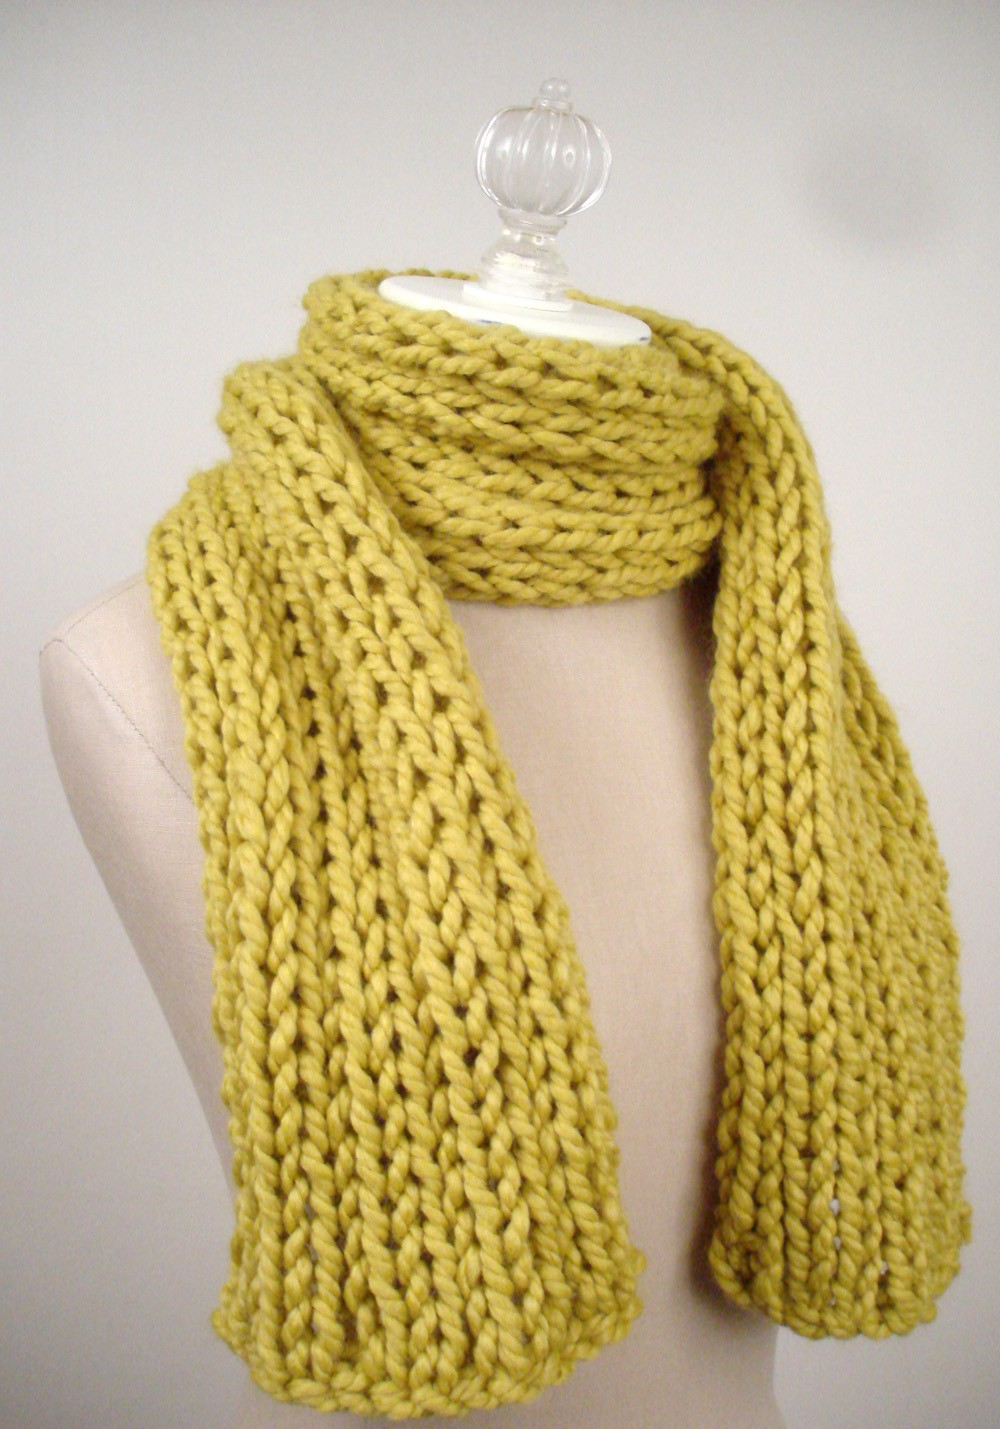 Phydeaux Designs: Totally easy and absolutely free knitting pattern